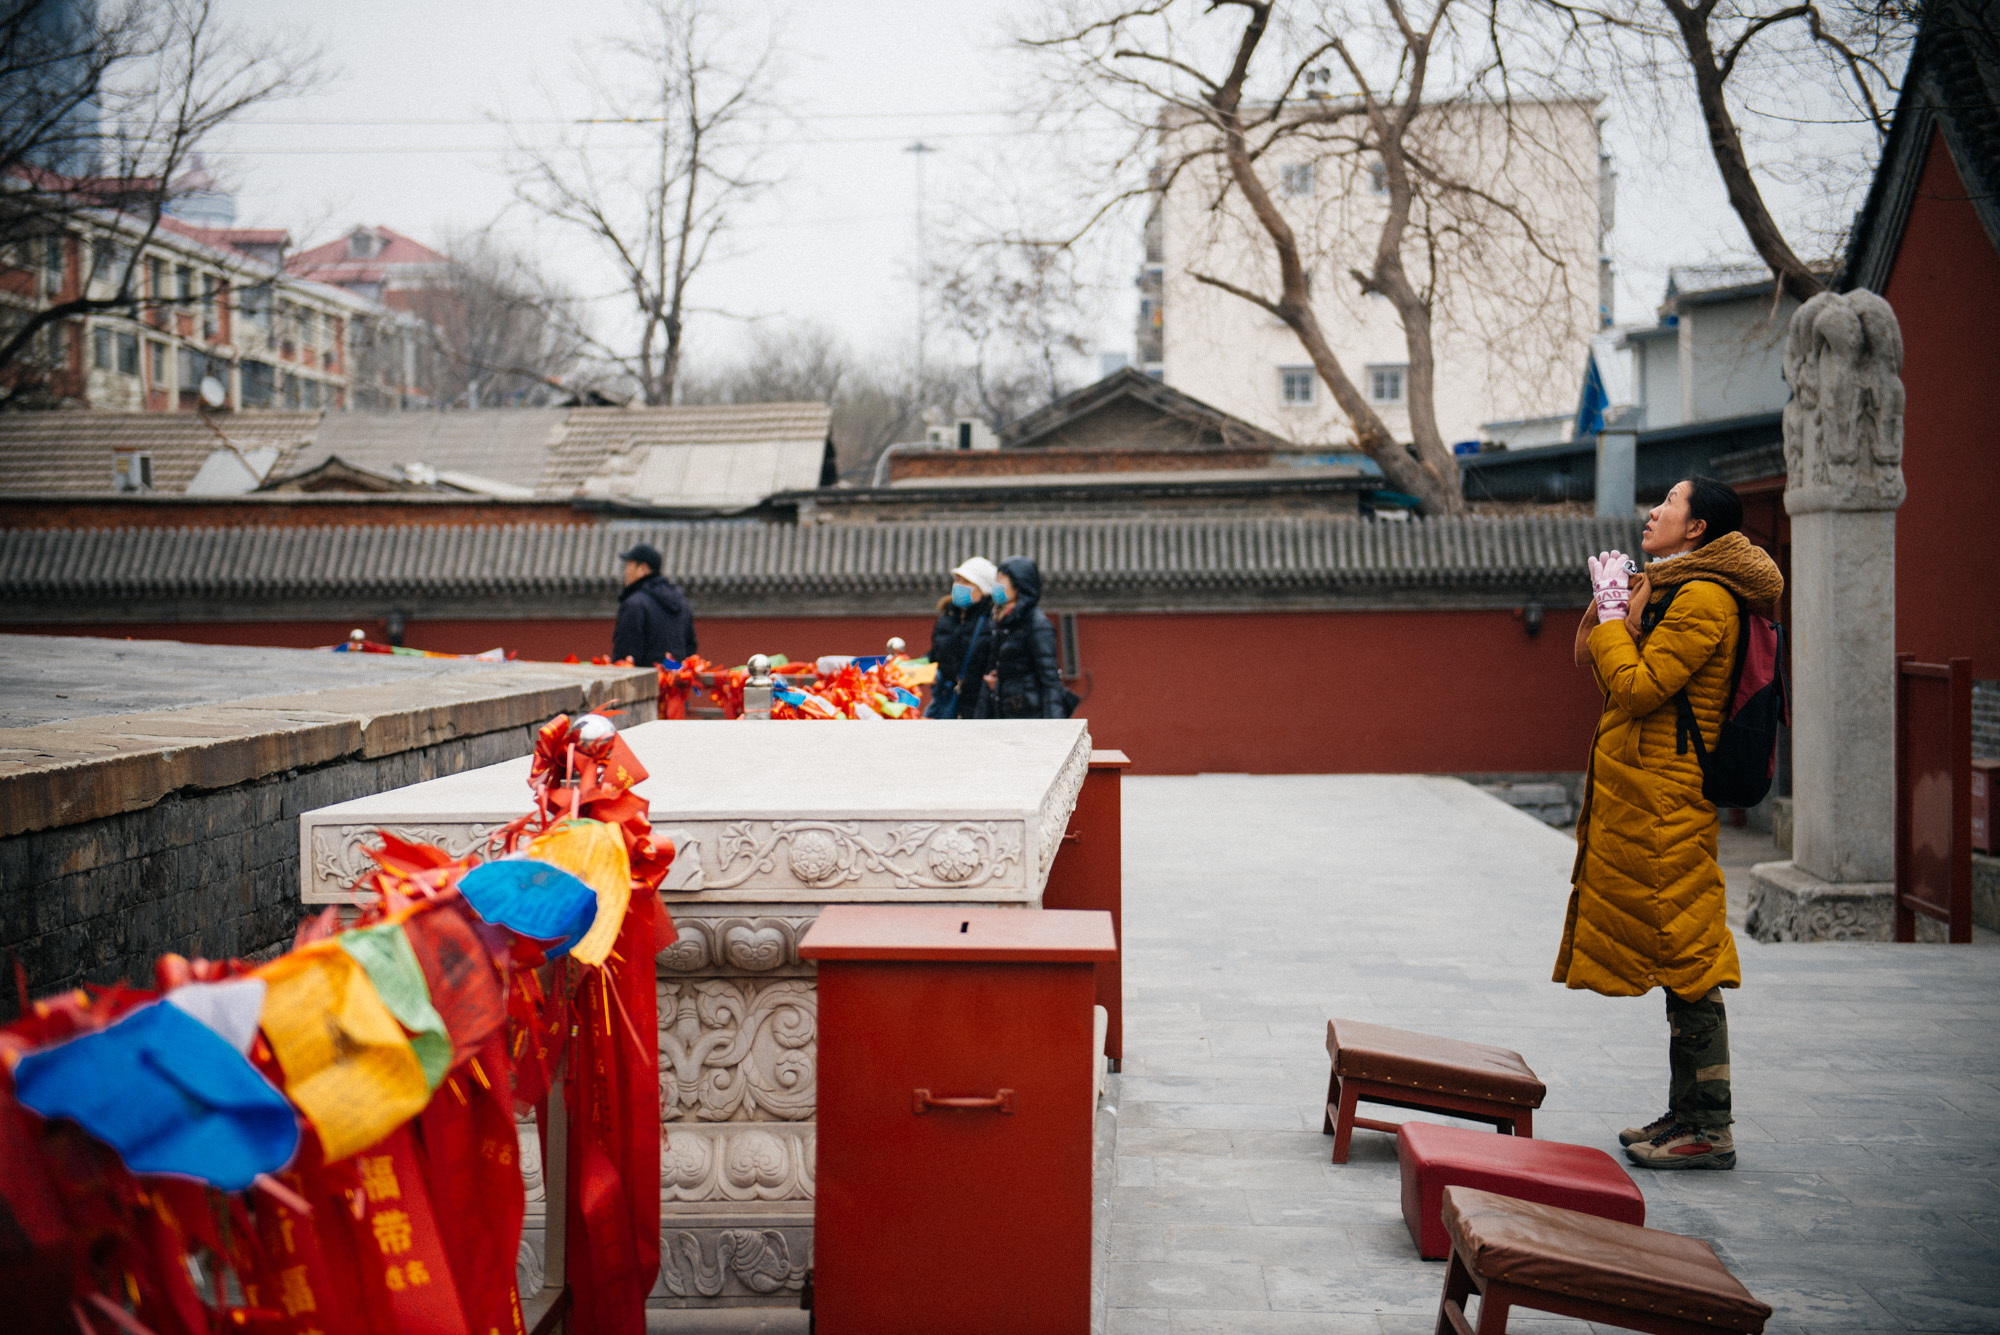 After walking around the pagoda several times, this woman bowed a few times and finished her worship.